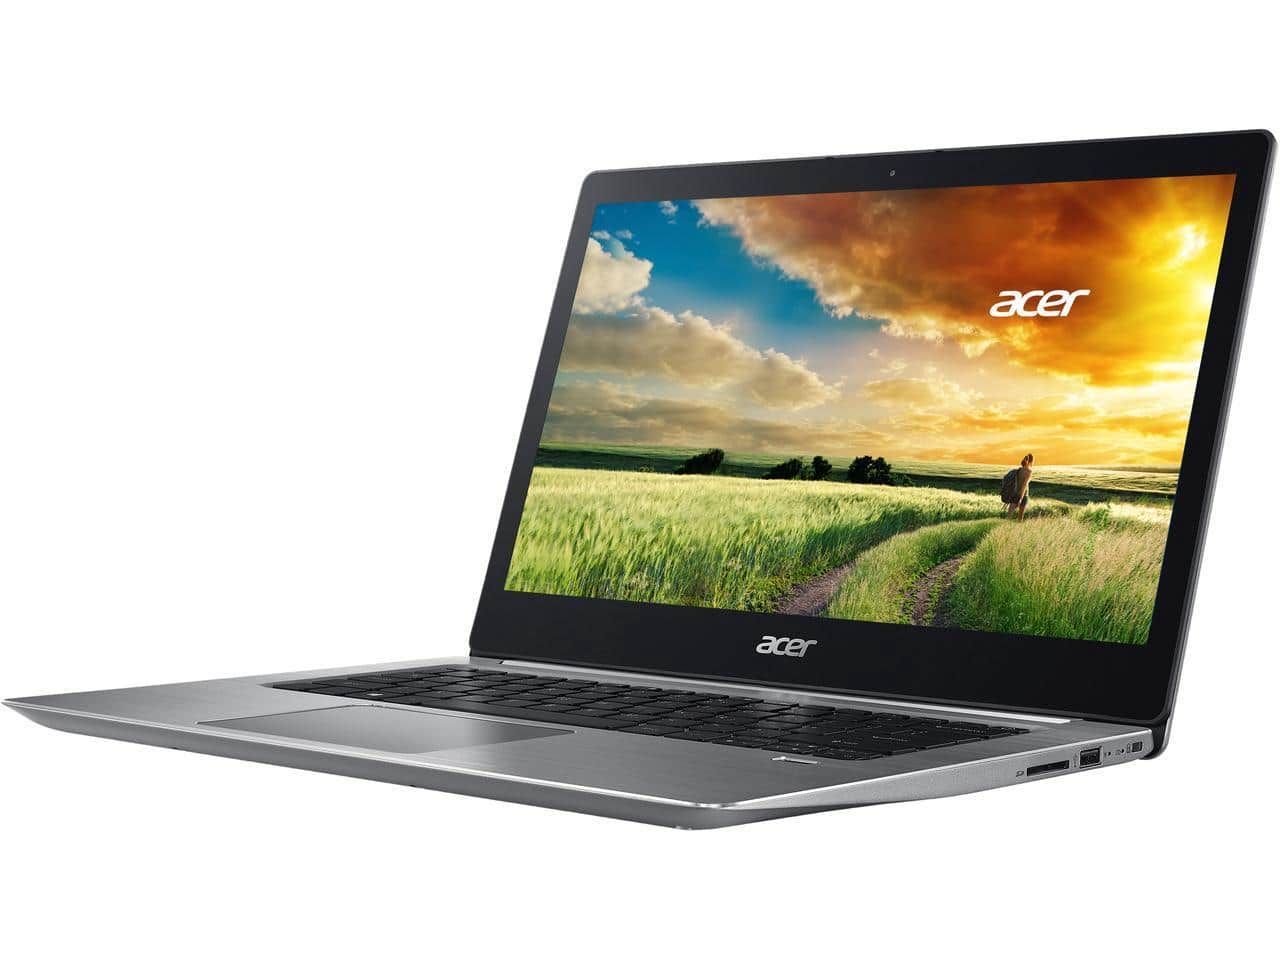 Acer Swift 3 14: 1080P IPS, i5-8250U, 8GB LPDDR3, 256GB SSD, MX 150, Type-C, Win10H @ $660 + F/S